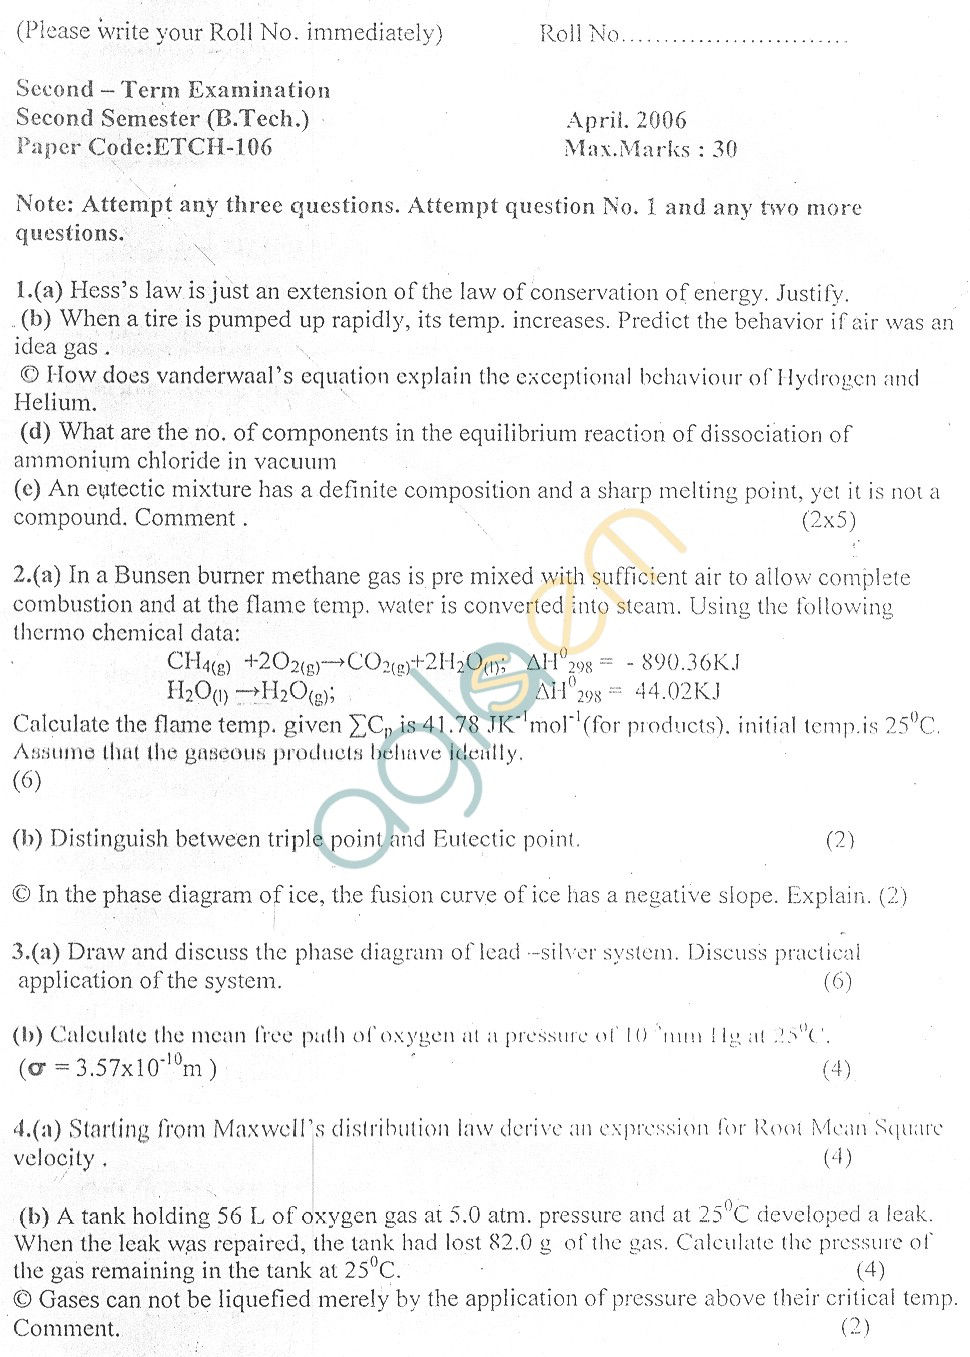 GGSIPU Question Papers Second Semester – Second Term 2006 – ETCH-106